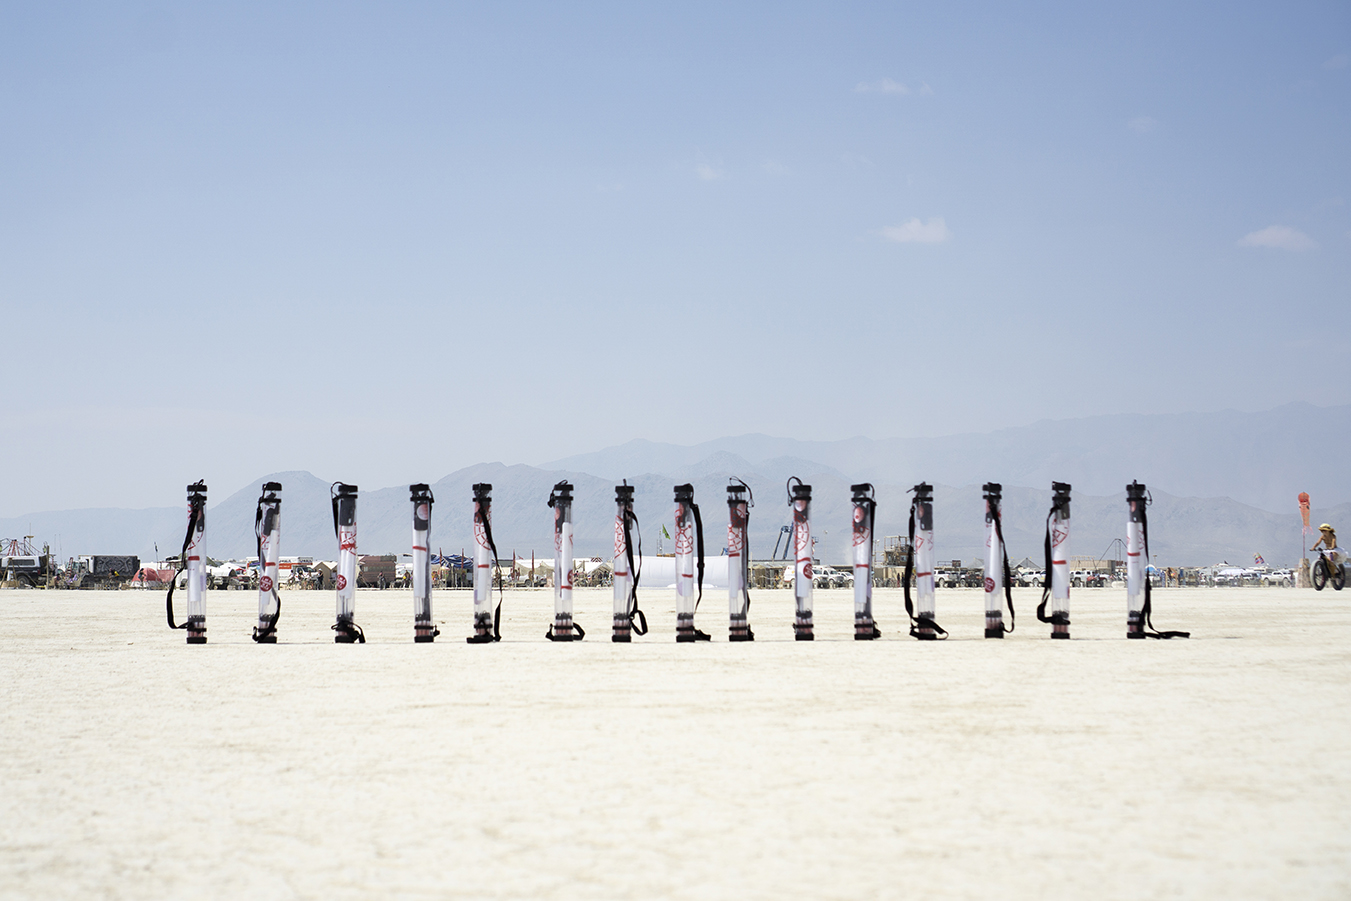 a row of poster tubes, also known as vessels, in the desert